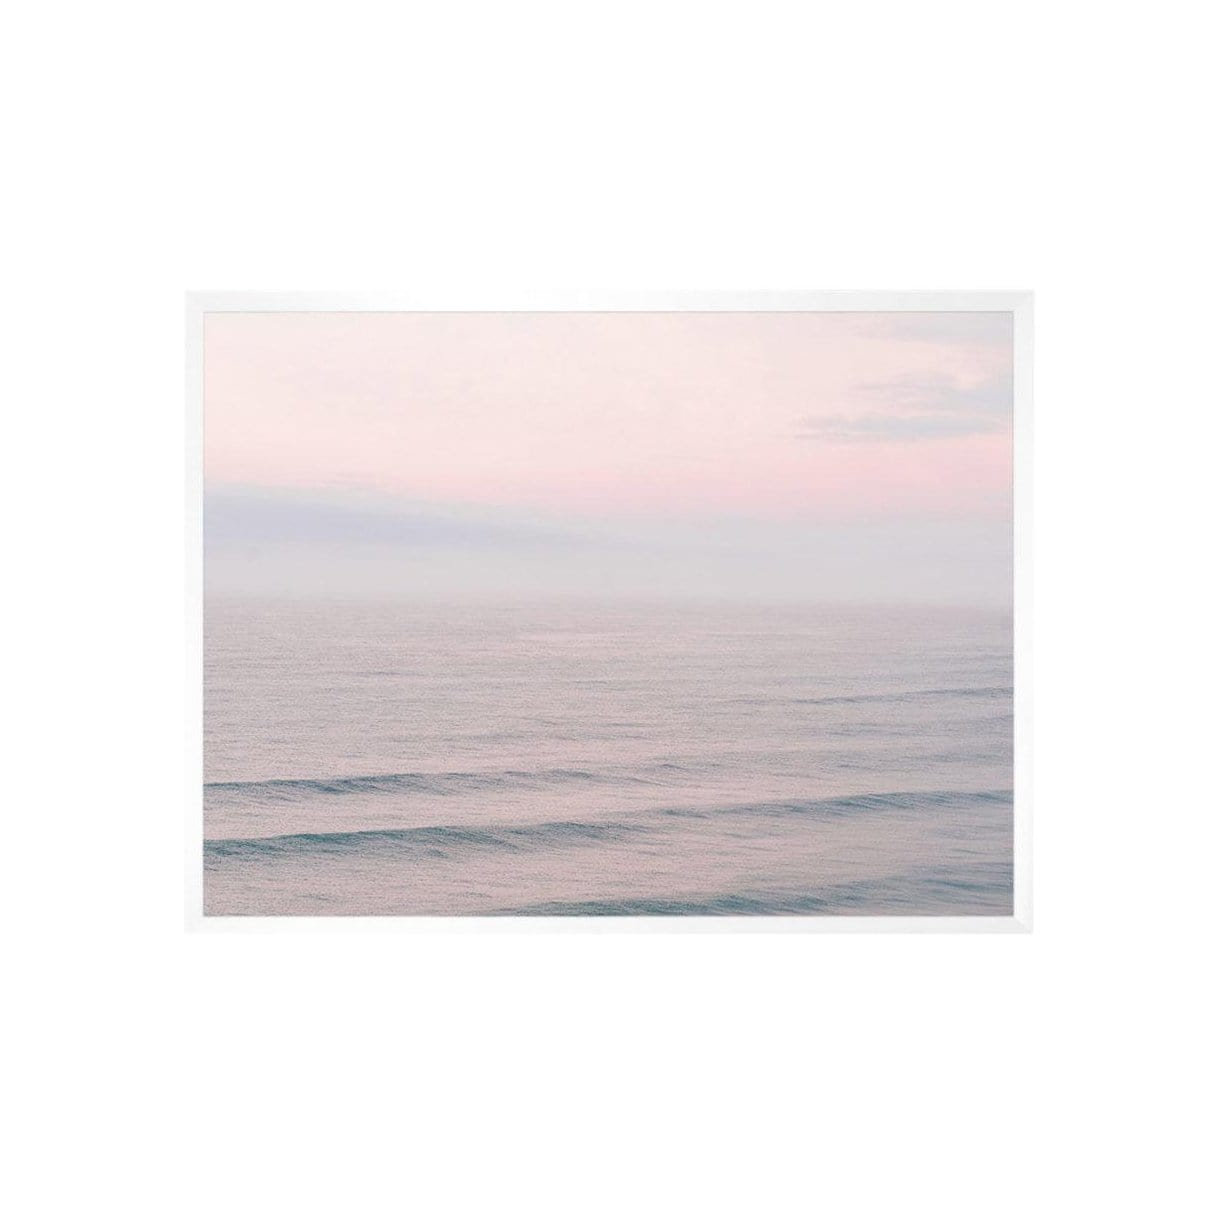 Carley Rudd Photography + Prints 20 x 24 / white frame, no mat Southern Ocean Sunset